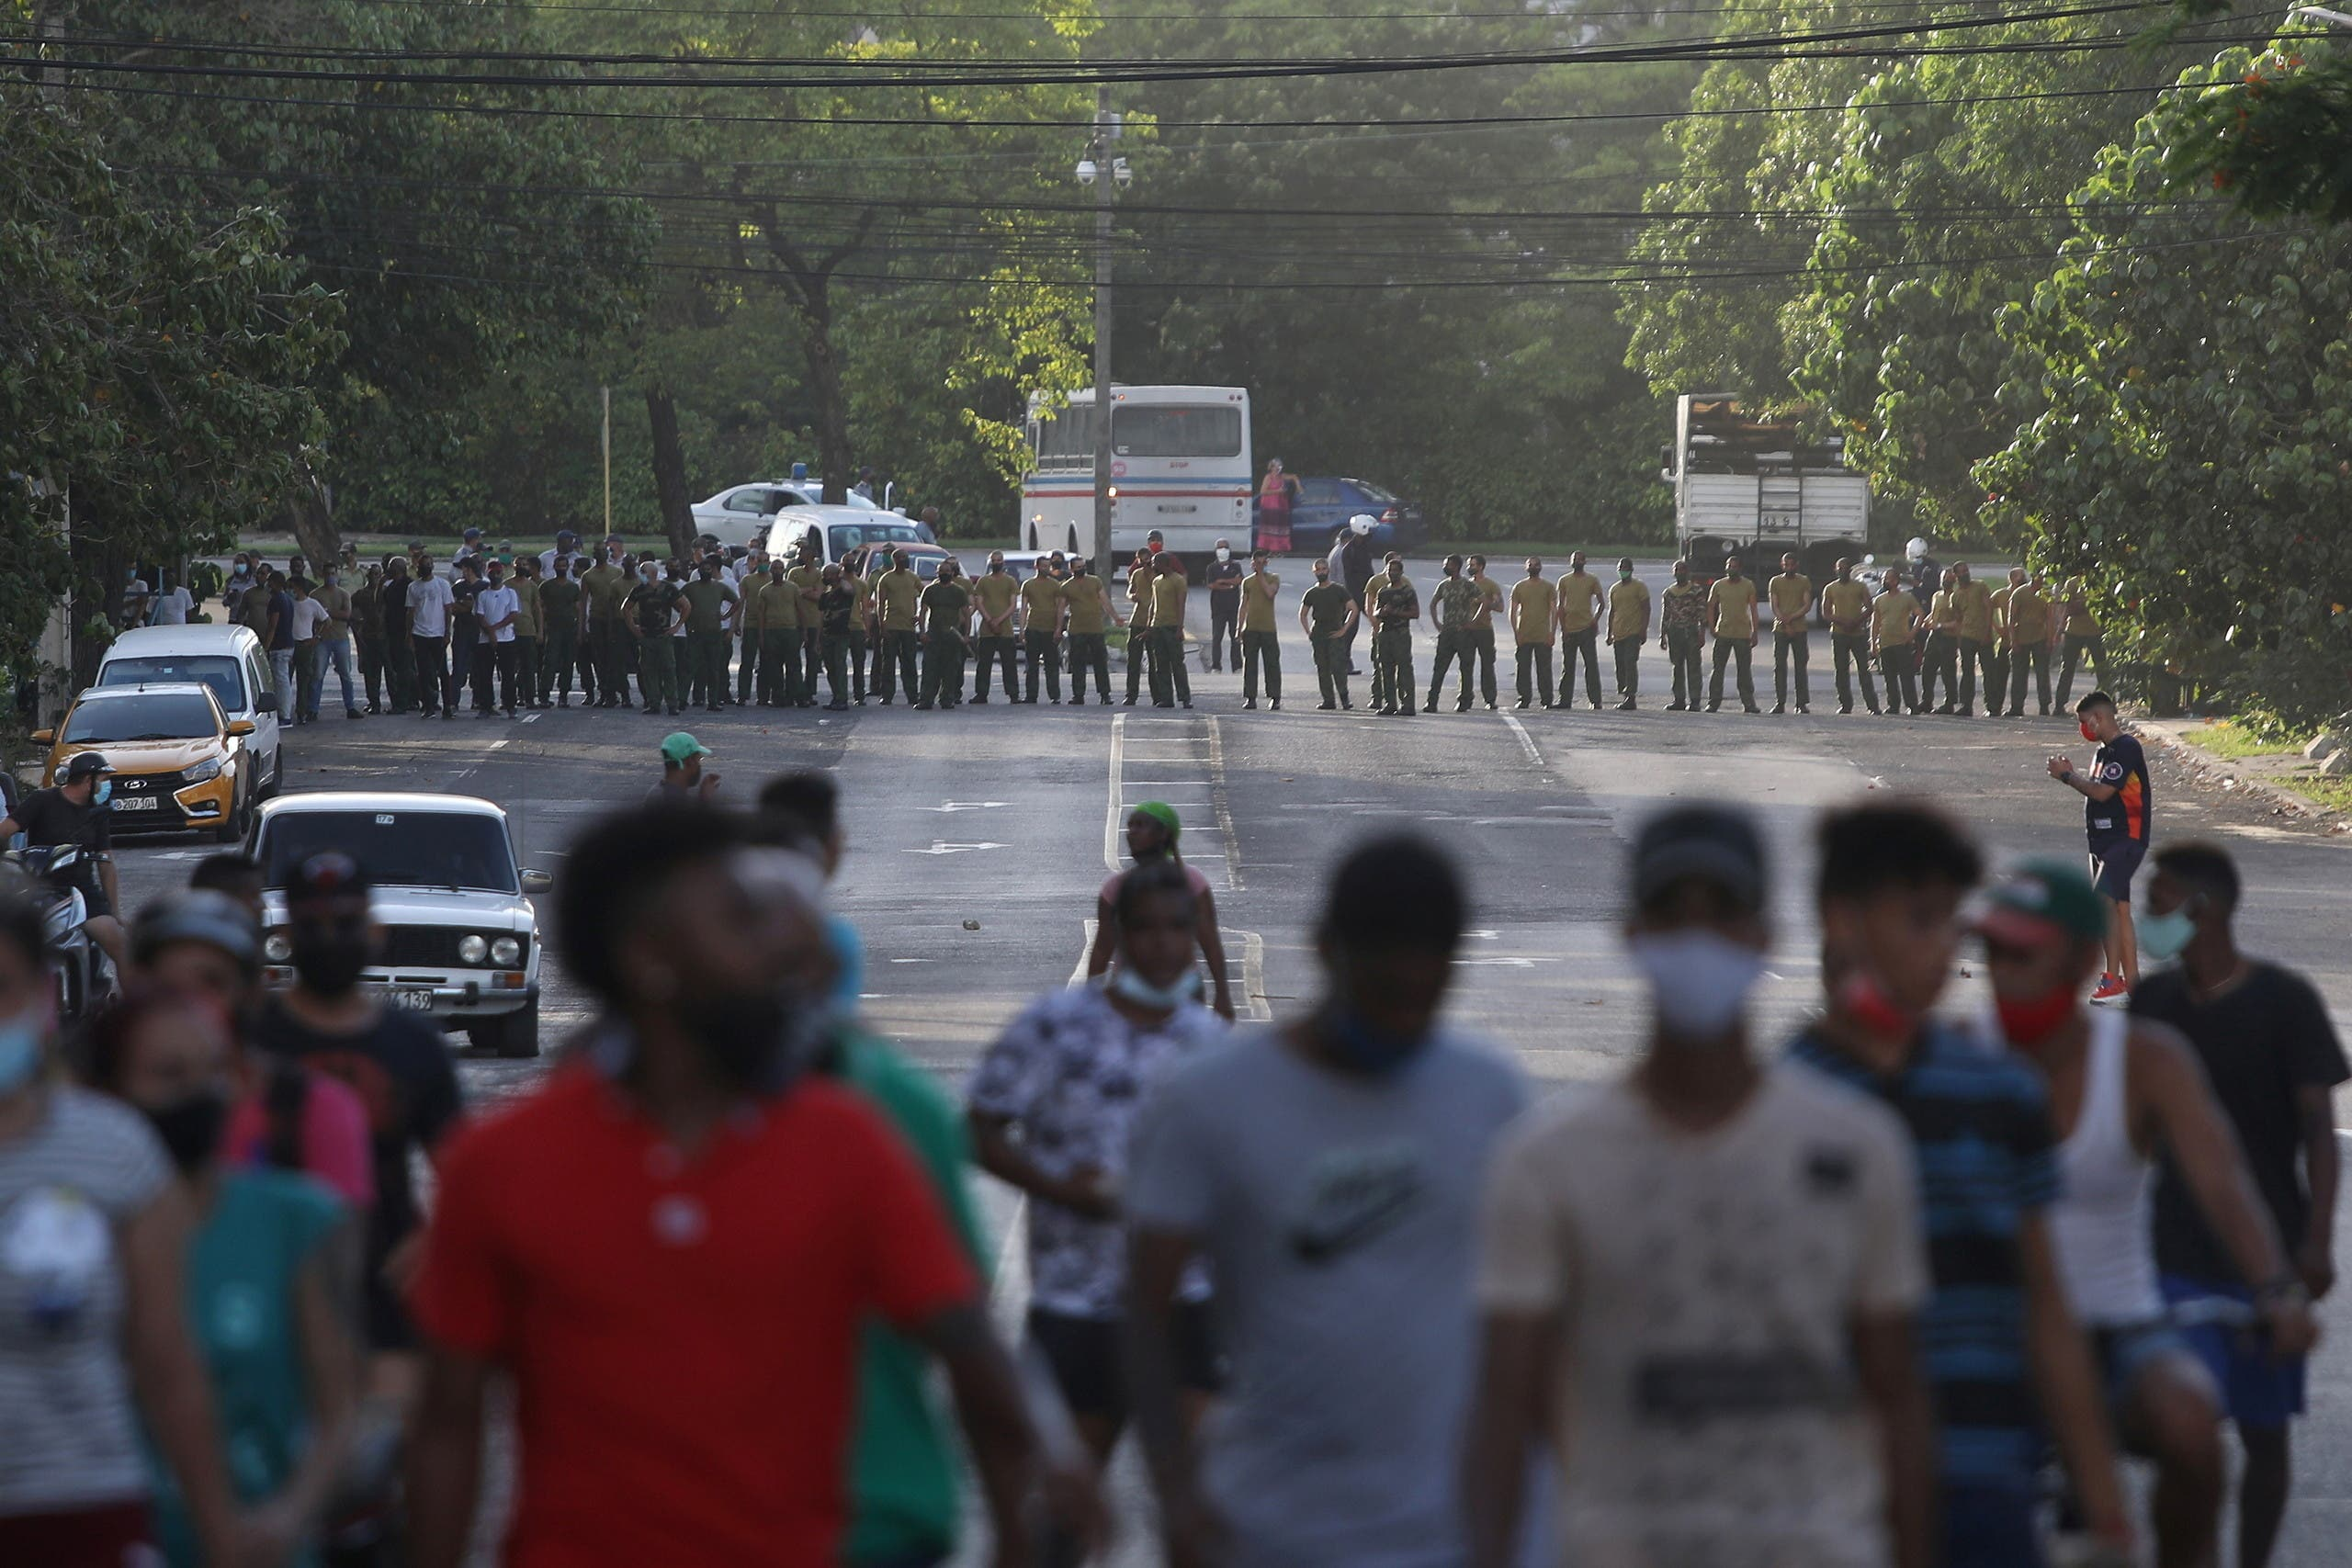 Demonstrators walk away from army soldiers blocking a road during a protest against and in support of the government, amidst the coronavirus disease (COVID-19) outbreak, in Havana, Cuba July 11, 2021. (Reuters)